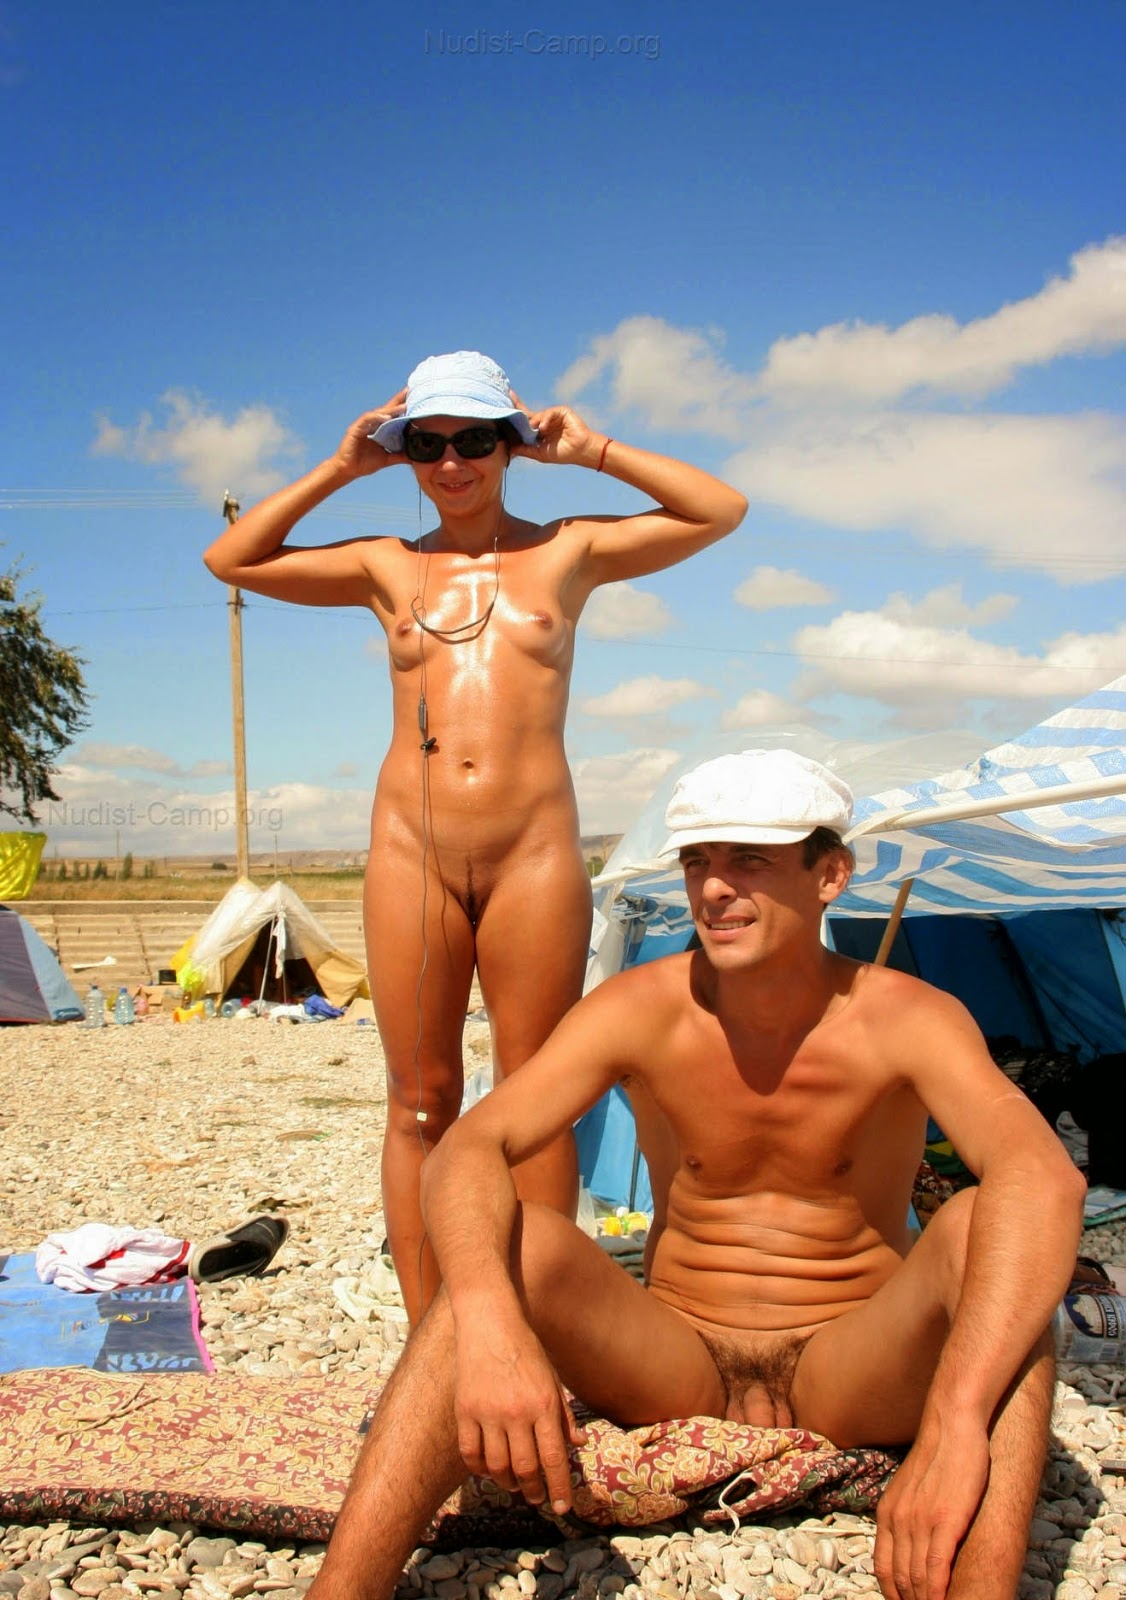 Naked Nudist Camps